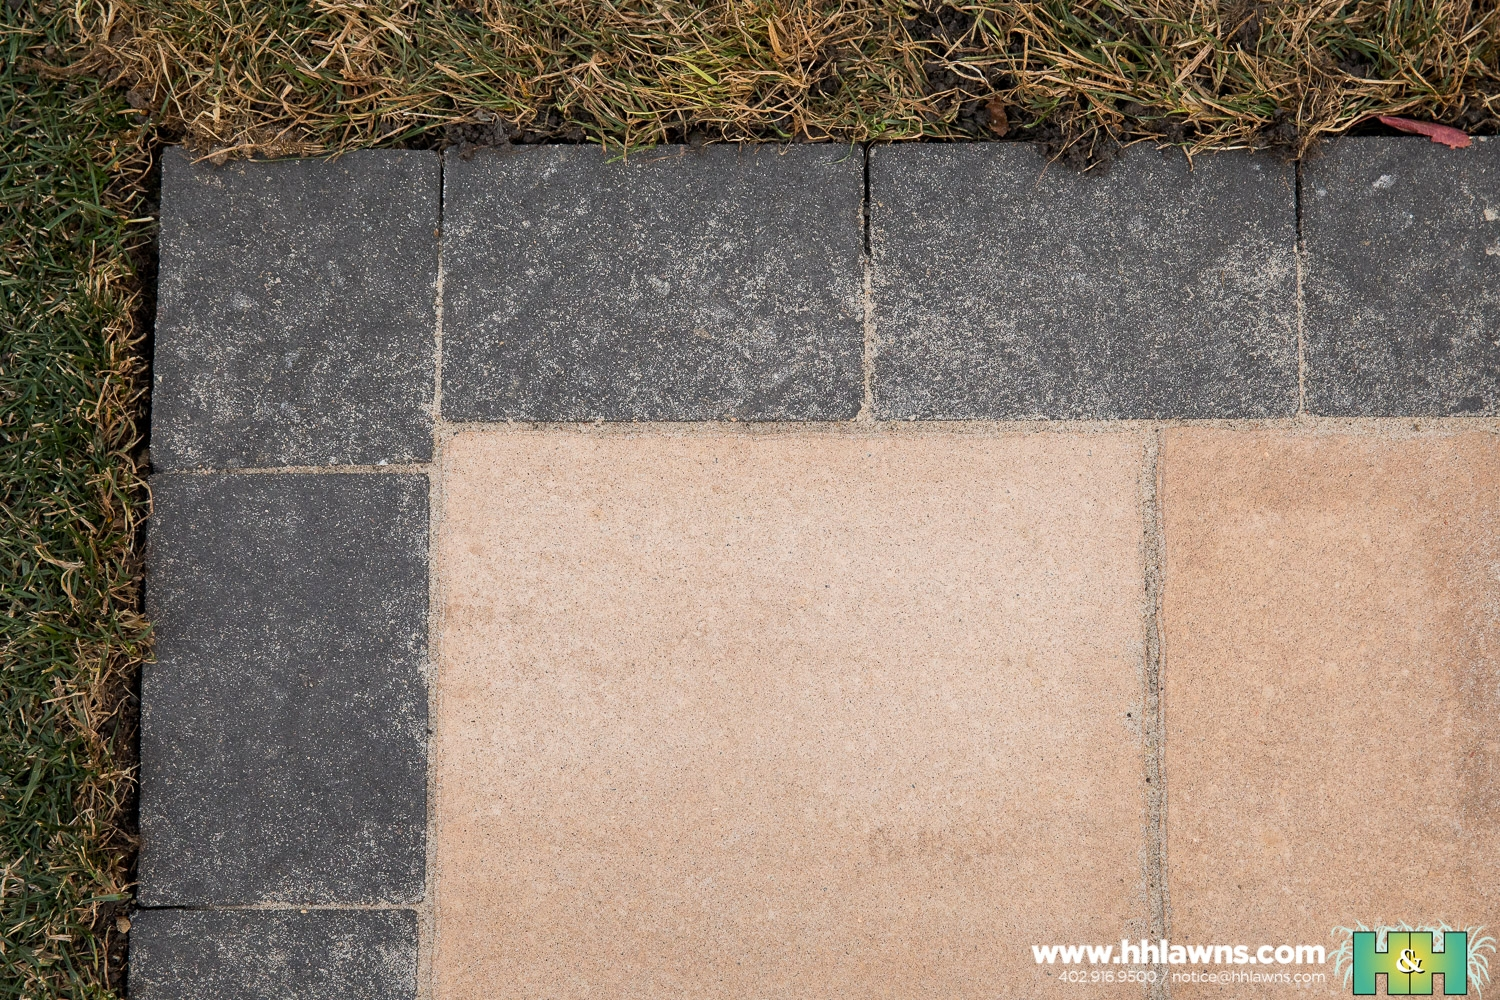 Mulligan Paver Patio Landscape Omaha H&H Lawn and Landscape